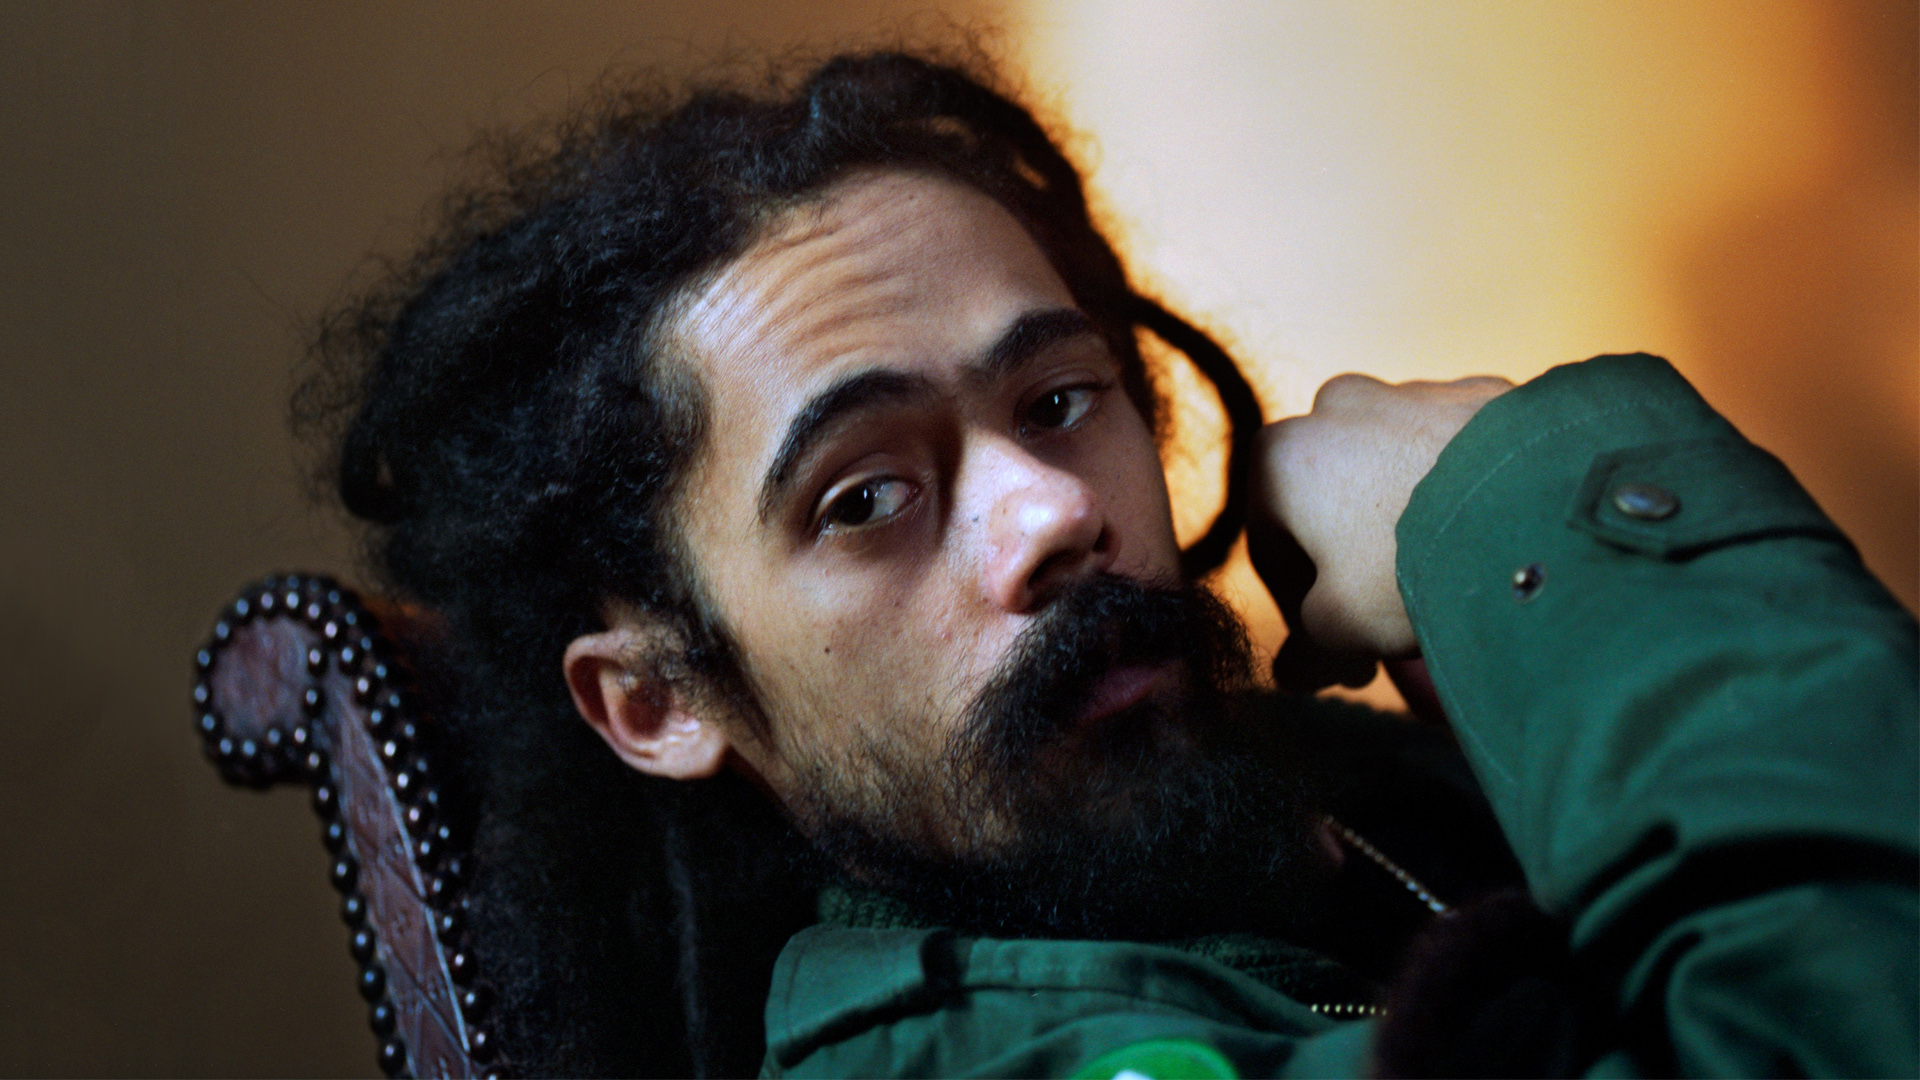 Damian Marley backdrop HD Wallpaper